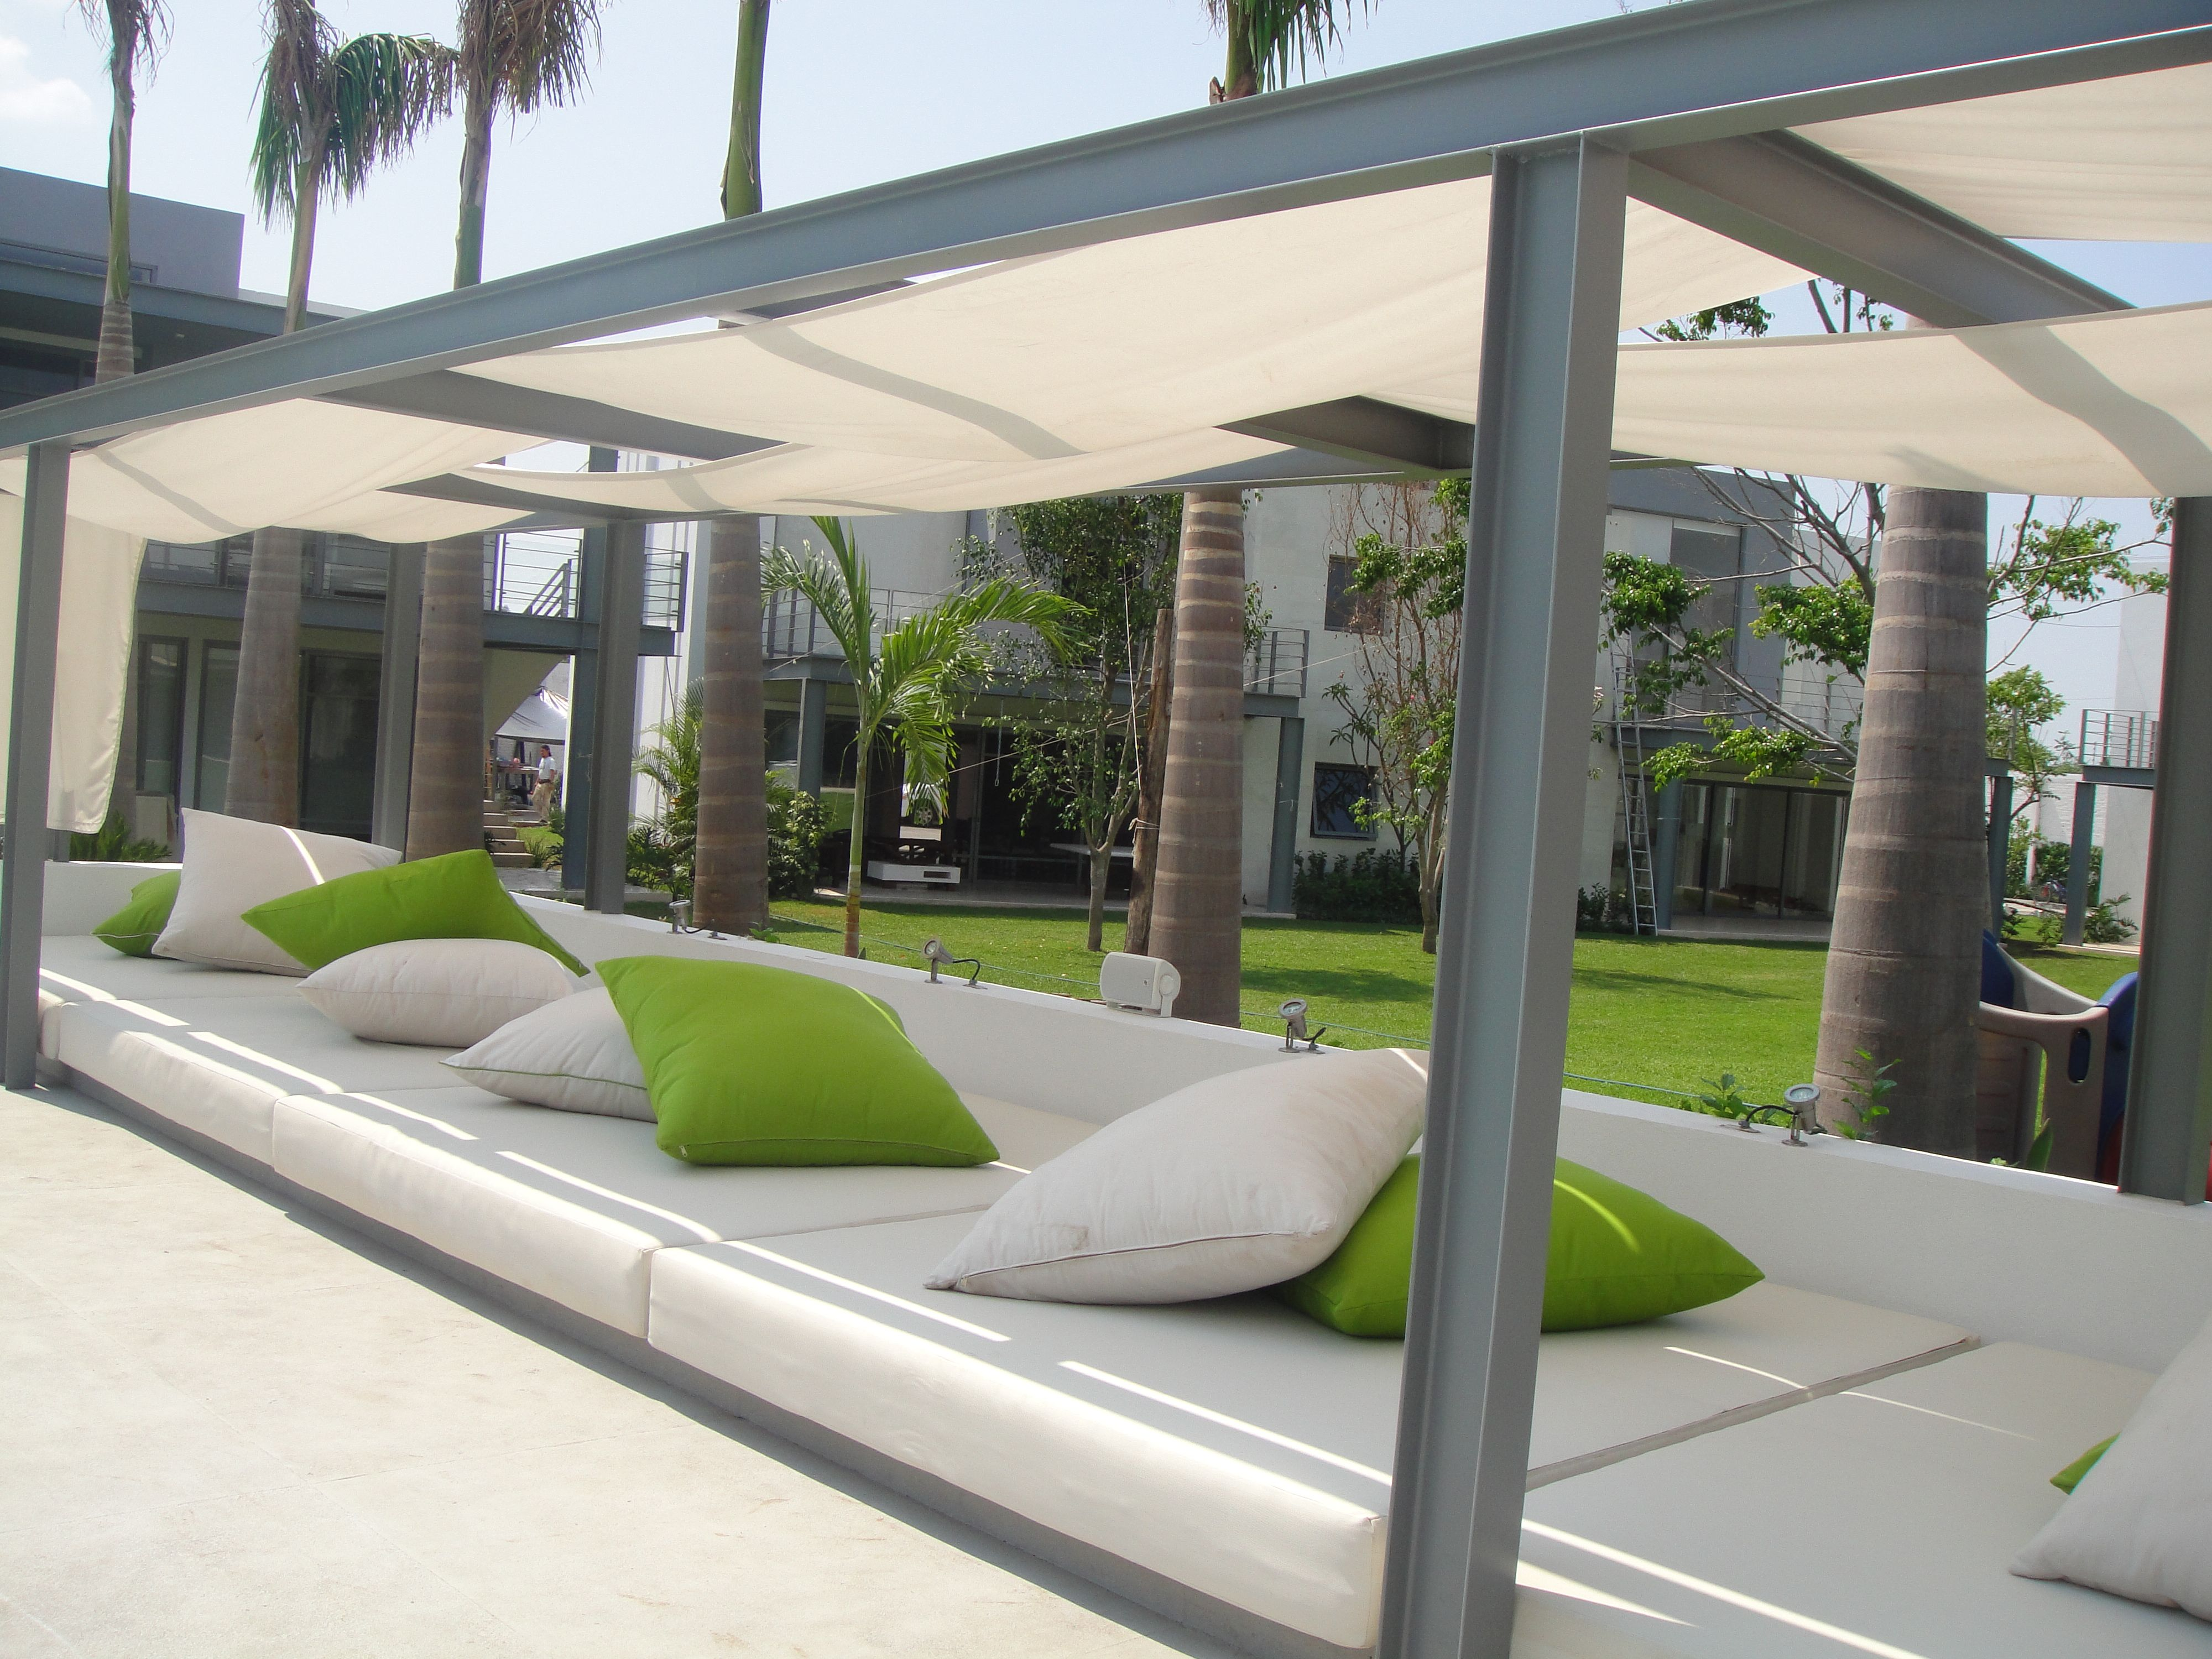 Ramsol Cuernavaca 434 Jpg 4000 3000 A A Out Pinterest # Weekend Muebles De Jardin